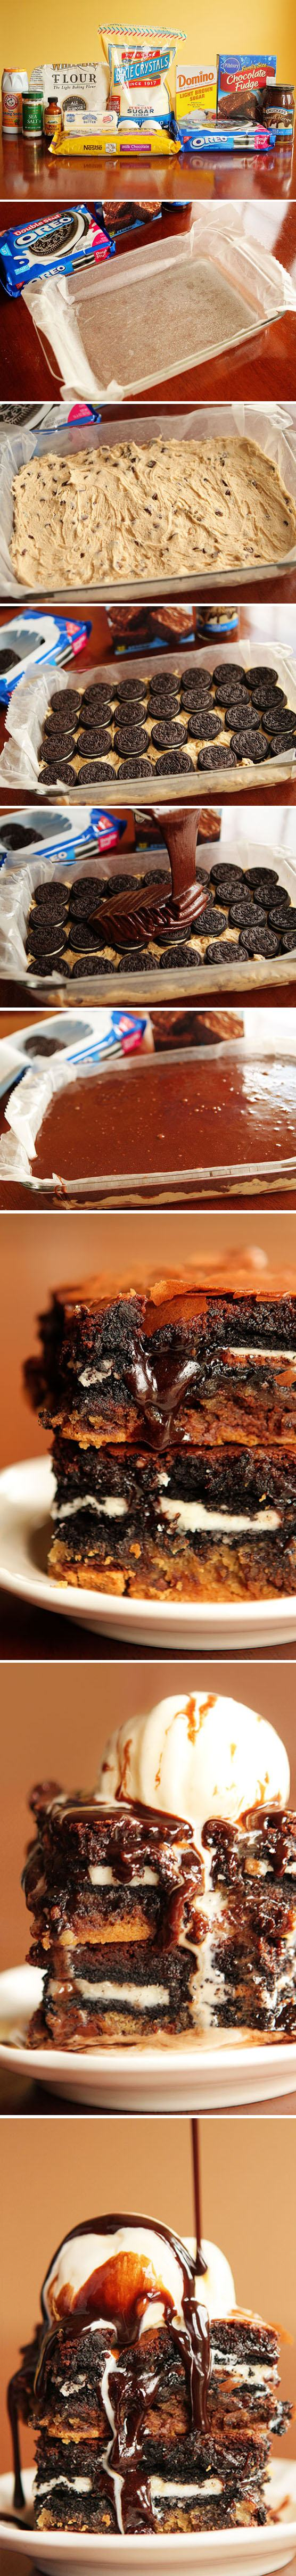 brownie-oreo-chocolate-pecados-reposteria-1